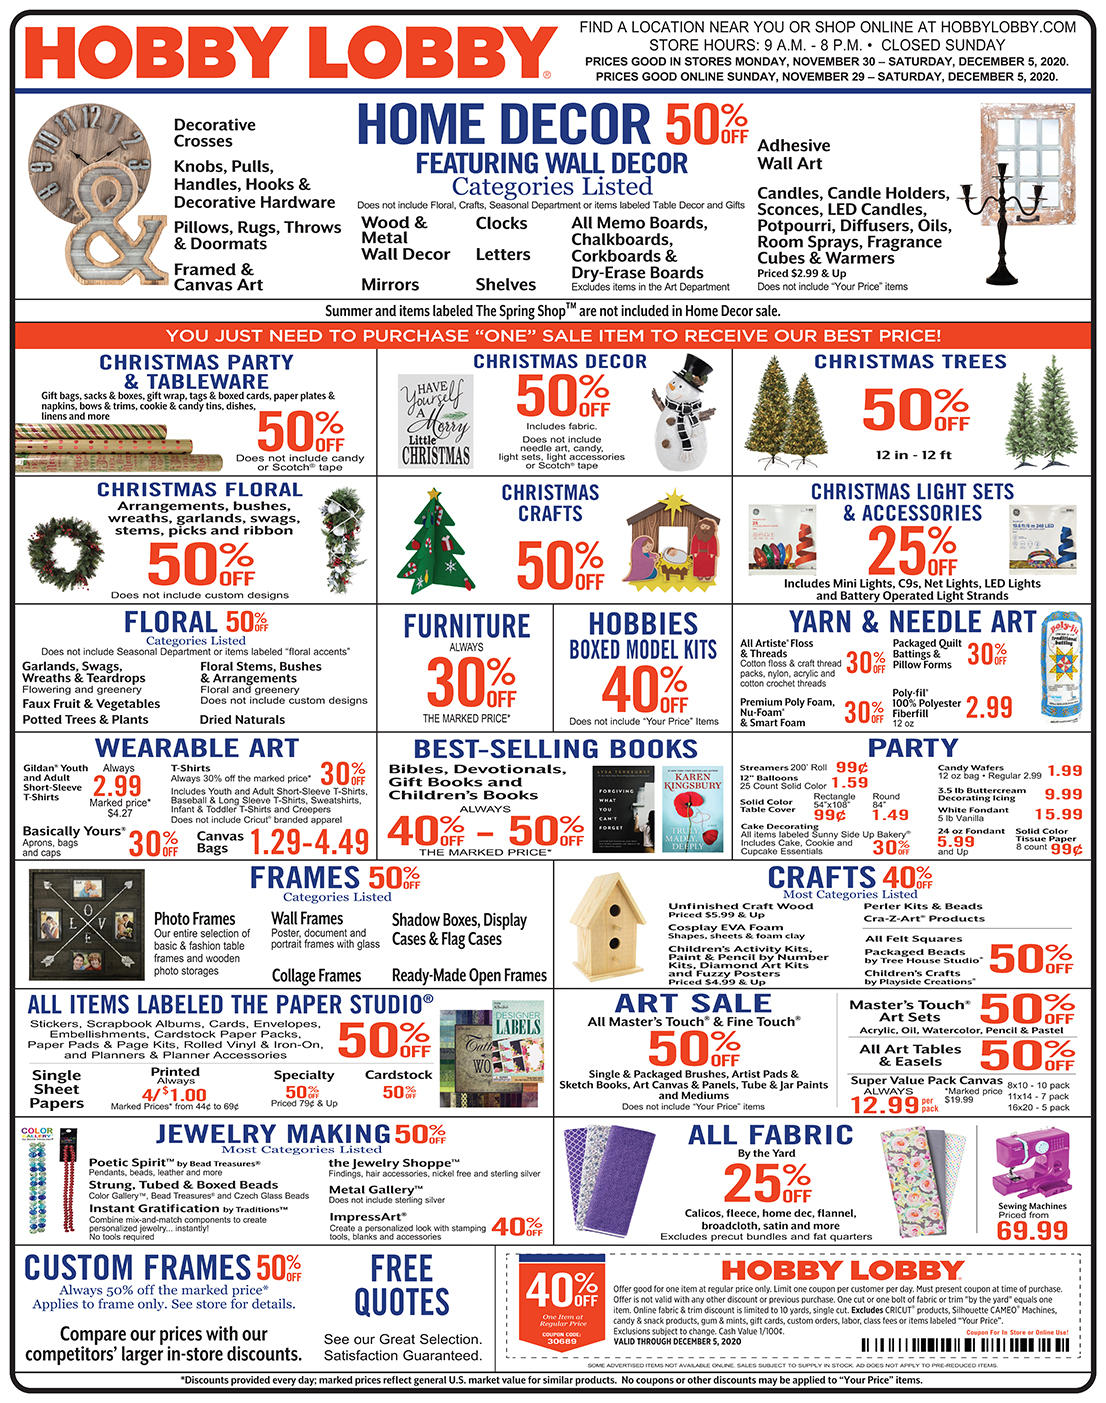 Hobby Lobby Weekly Ad - Prices Good Through December 5th 2020